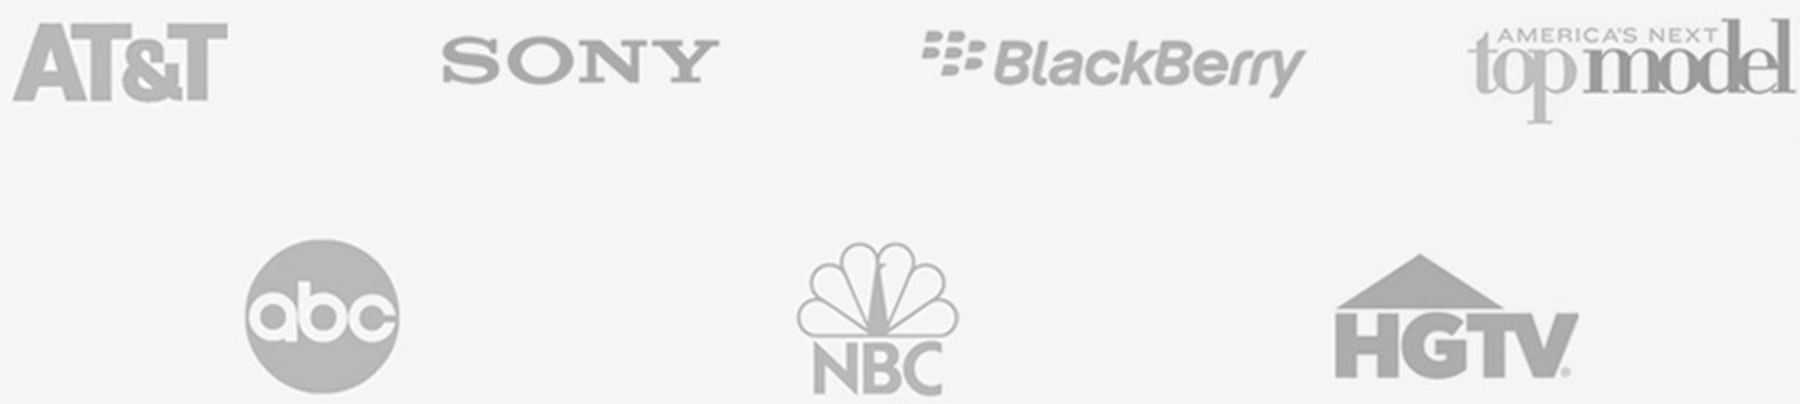 At&t, Sony, BlackBerry, ABC, Nbc, HGTV